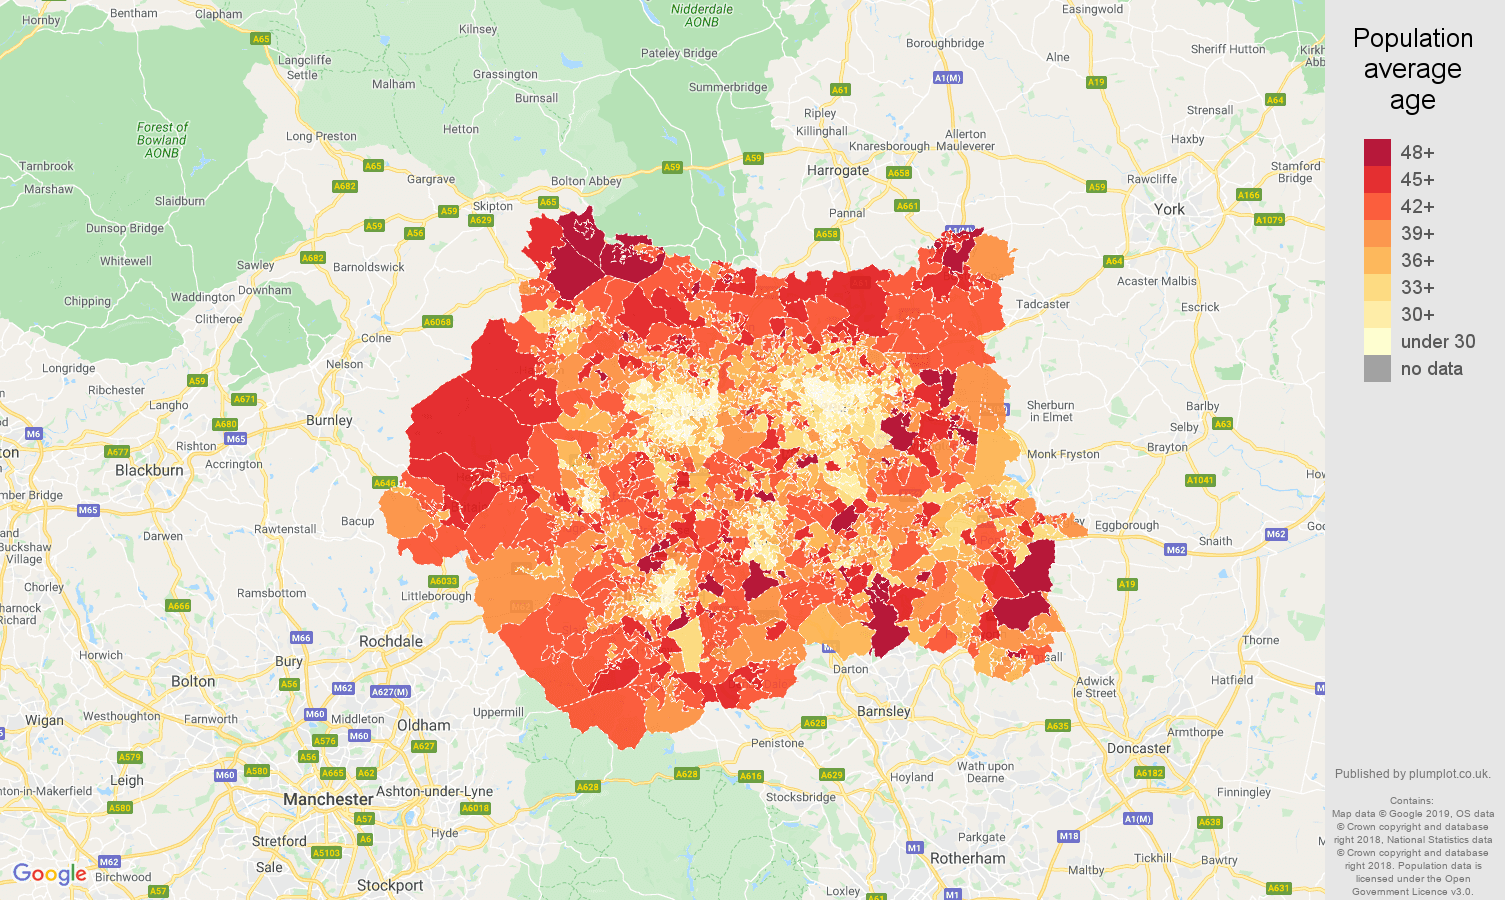 West Yorkshire population average age map